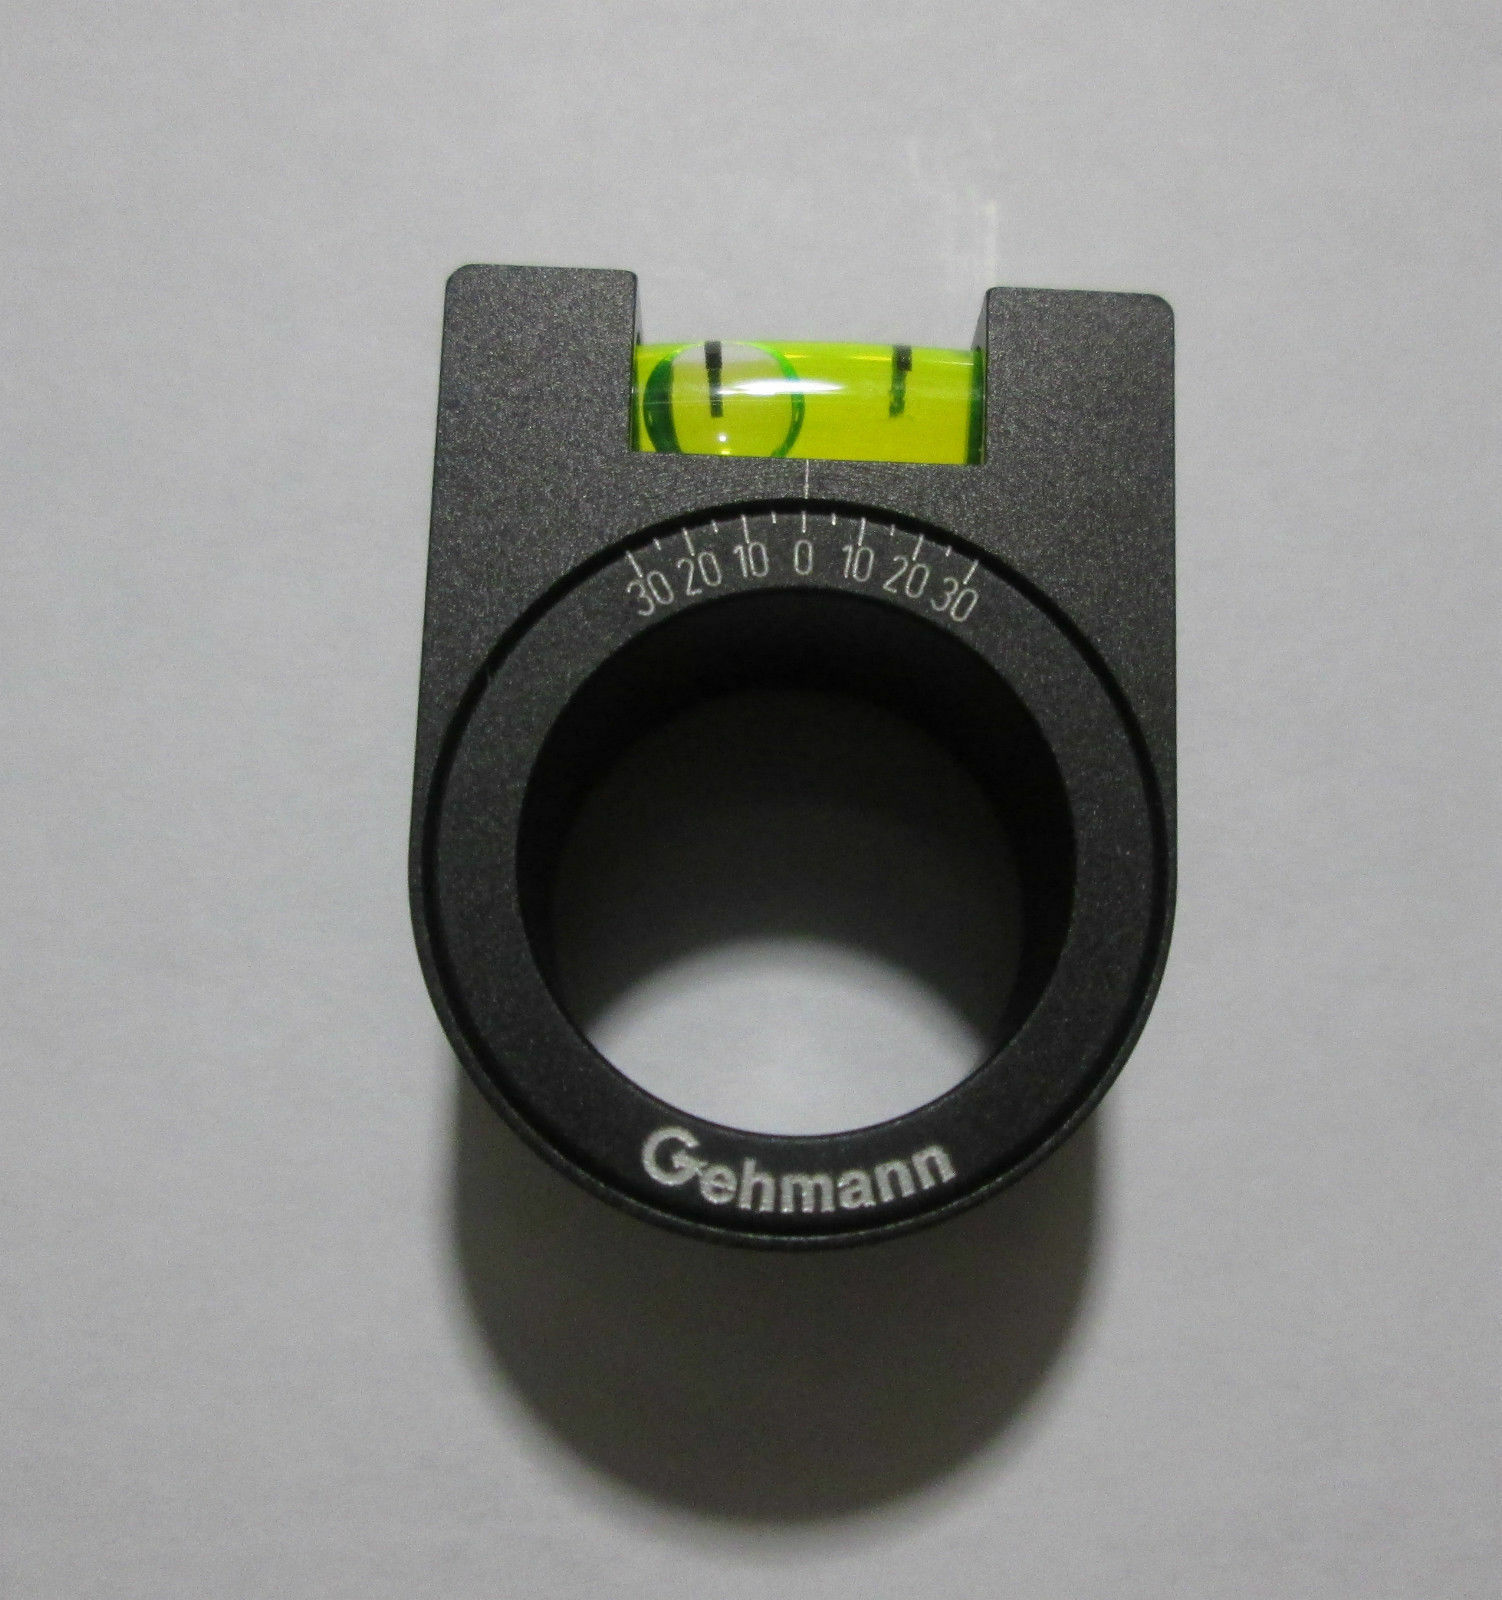 Gehmann 18mm 581 Series Adjustable Foresight Unit Level